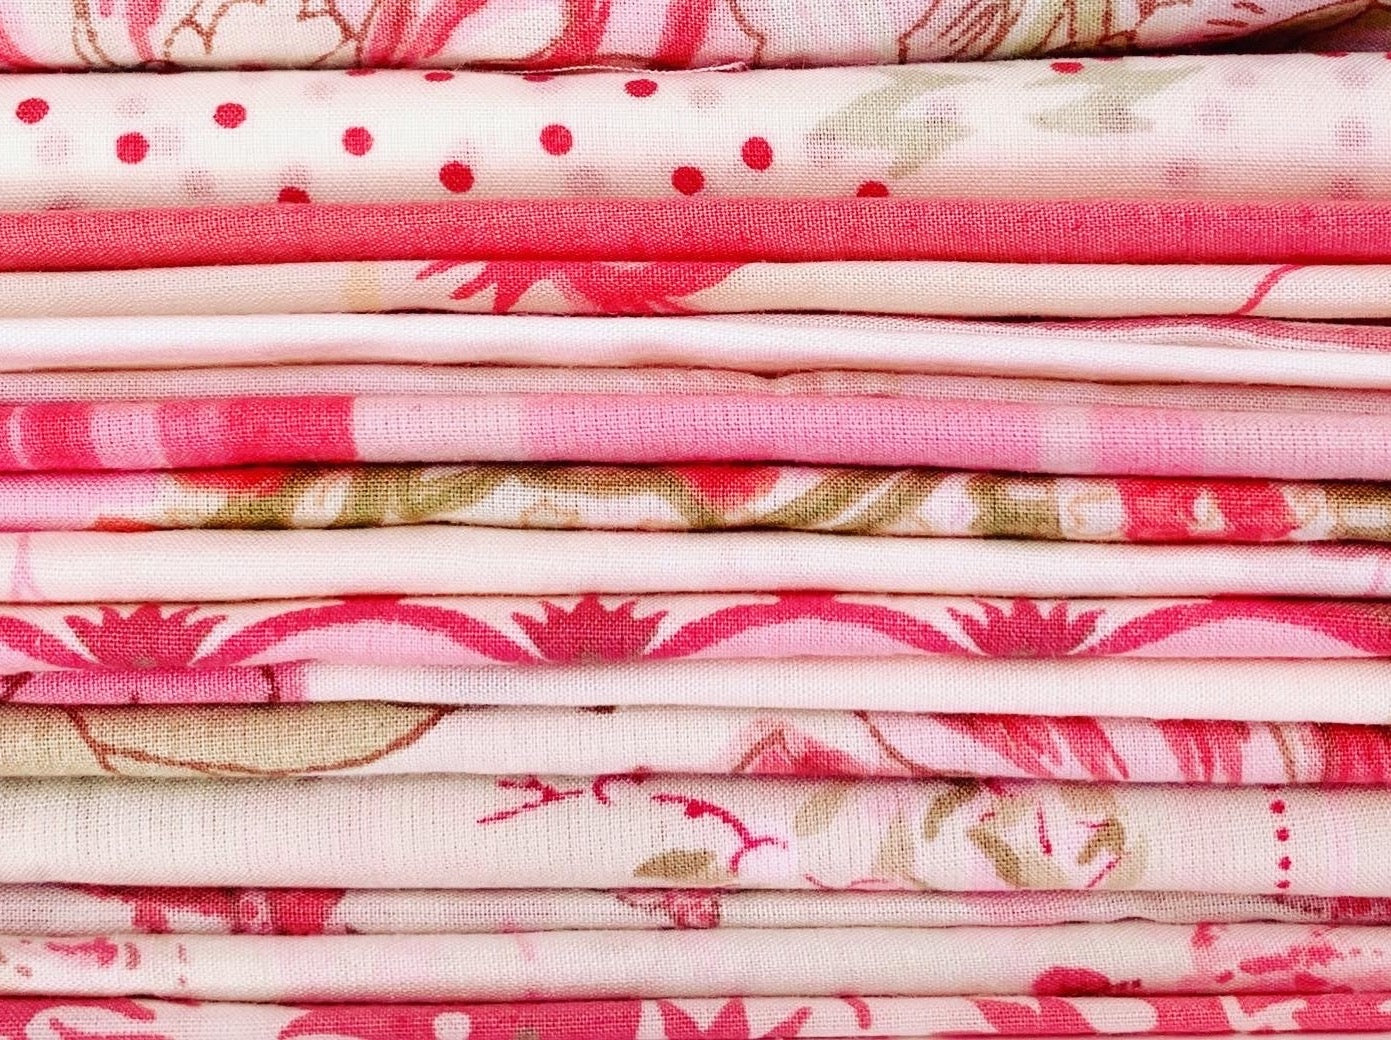 Berry Cotton Percale Scraps